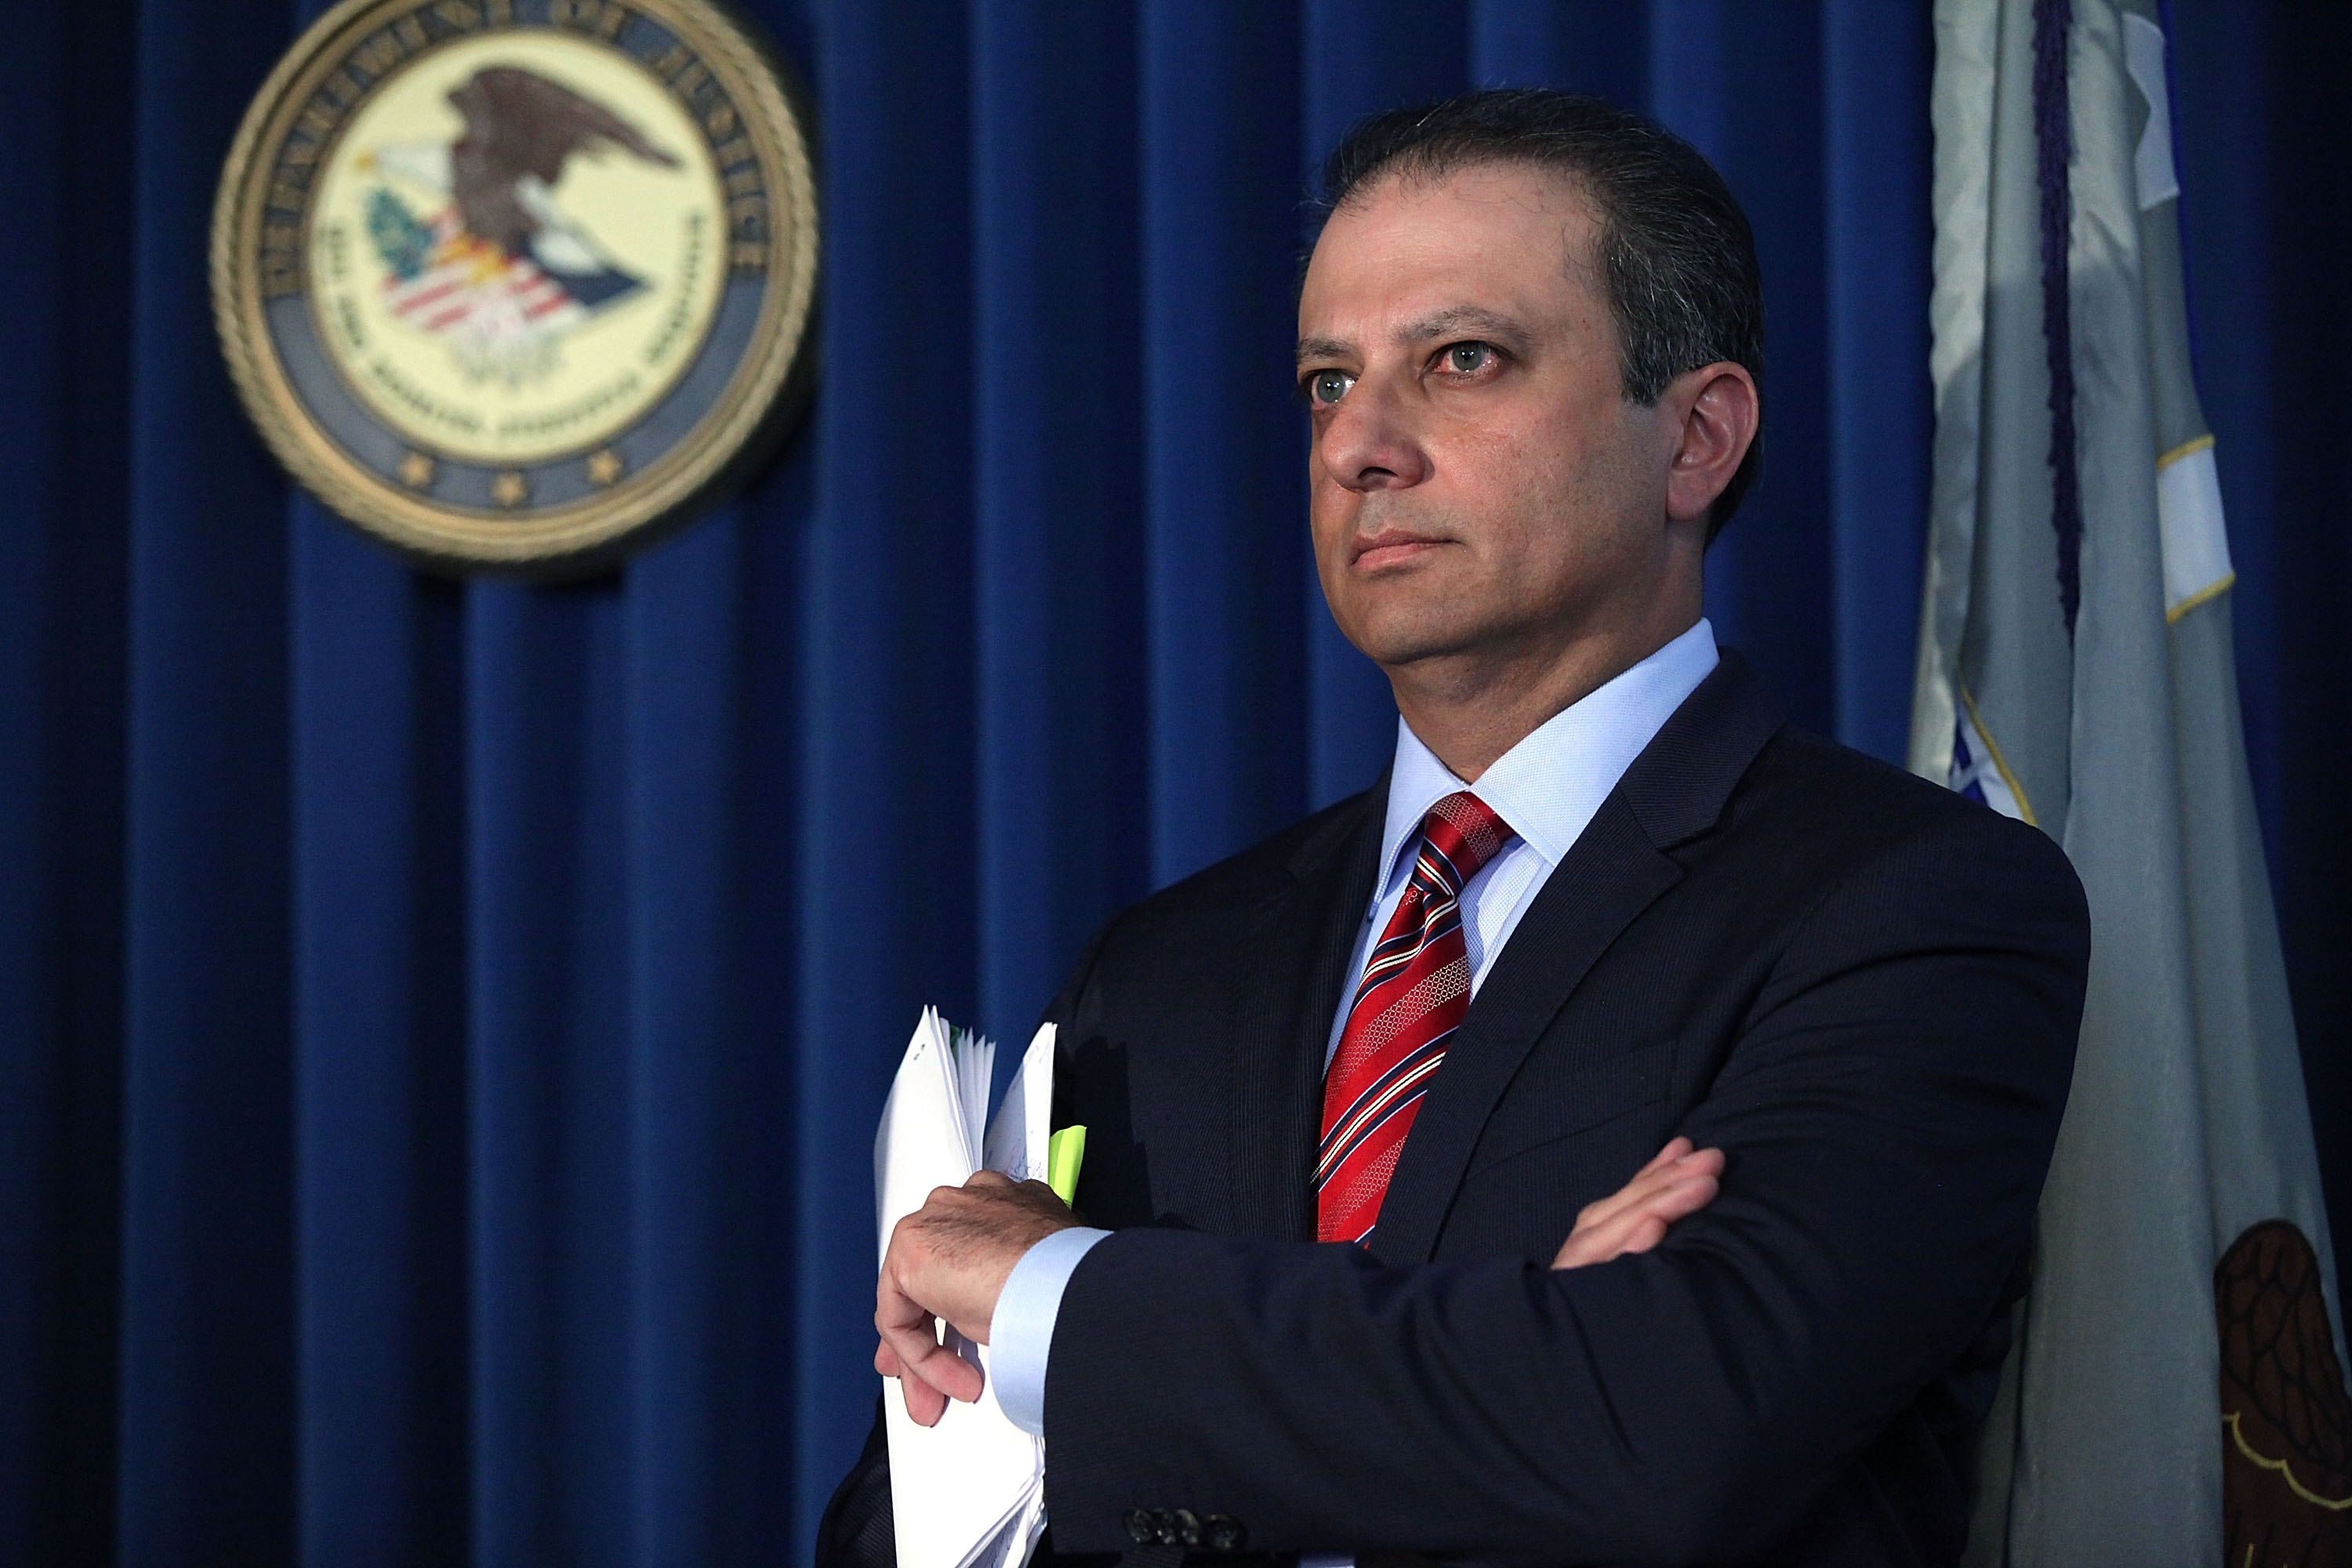 """U.S. Attorney Preet Bharara, citing """"a deep problem with corruption in Albany,"""" warns legislators that reforms are needed on ethics issues."""